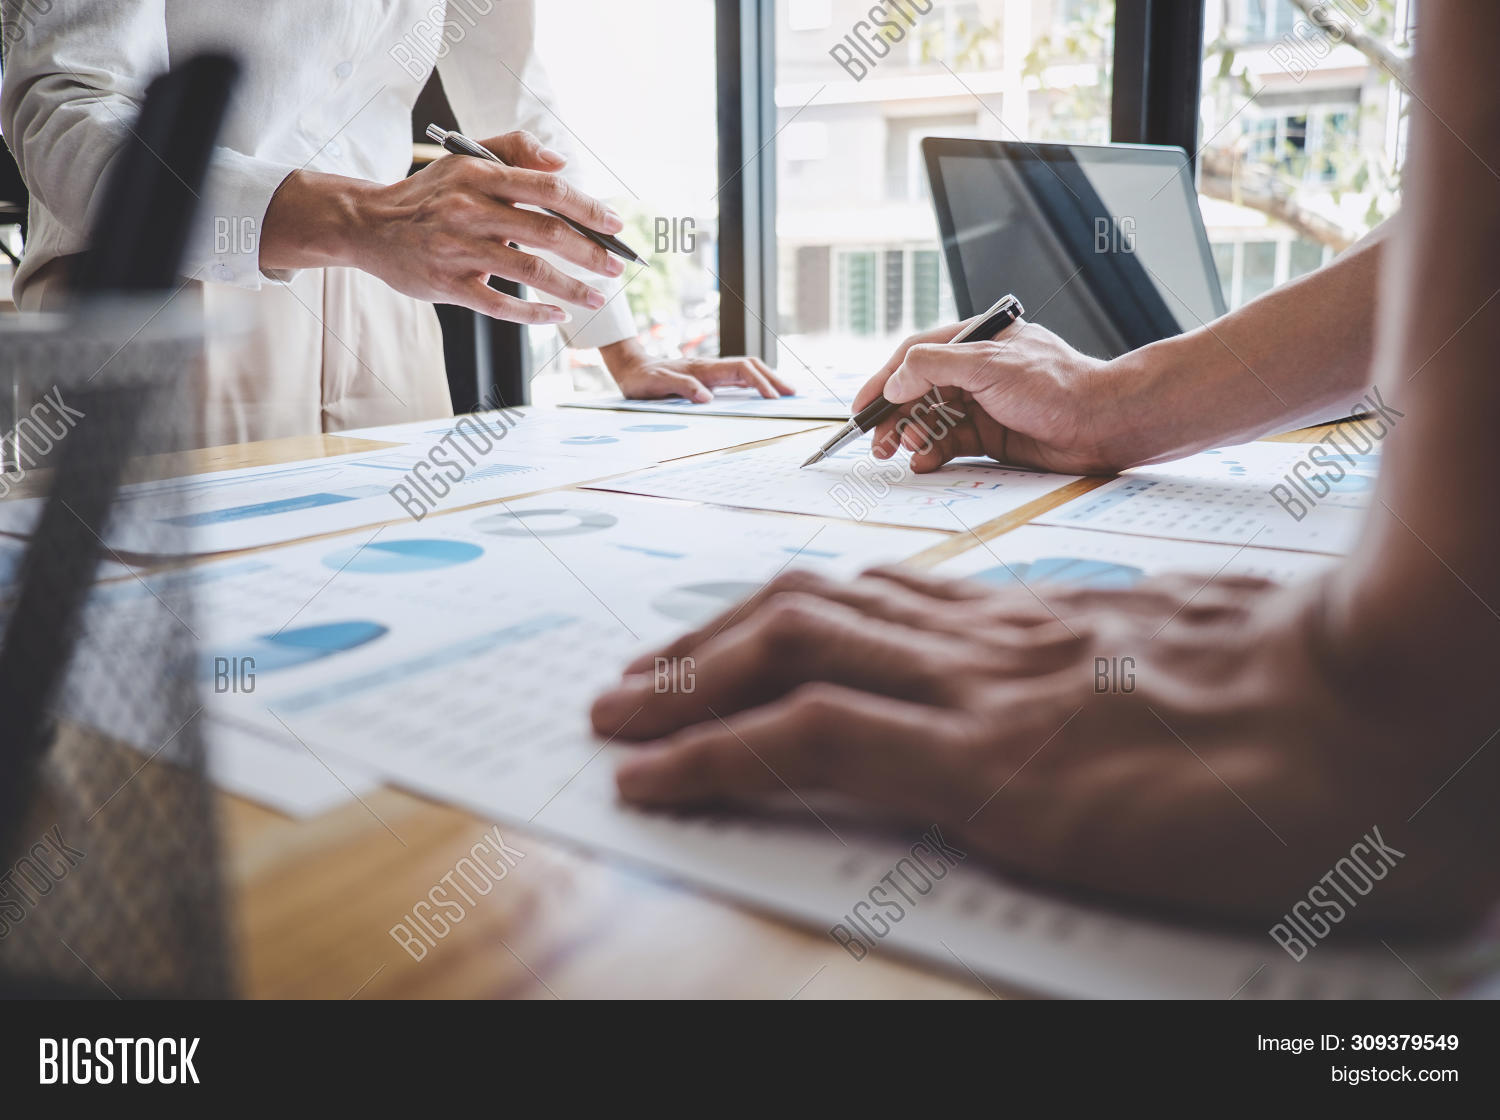 accounting,administration,agreement,analysis,brainstorming,business,businessman,businesswoman,calculator,collaboration,colleagues,communication,conference,connection,consultation,contract,corporate,discussion,document,entrepreneur,executive,finance,financier,group,growth,information,investment,leadership,management,marketing,meeting,paperwork,partner,payment,performance,plan,planning,presentation,professional,report,result,startup,strategy,success,talking,team,teamwork,technology,working